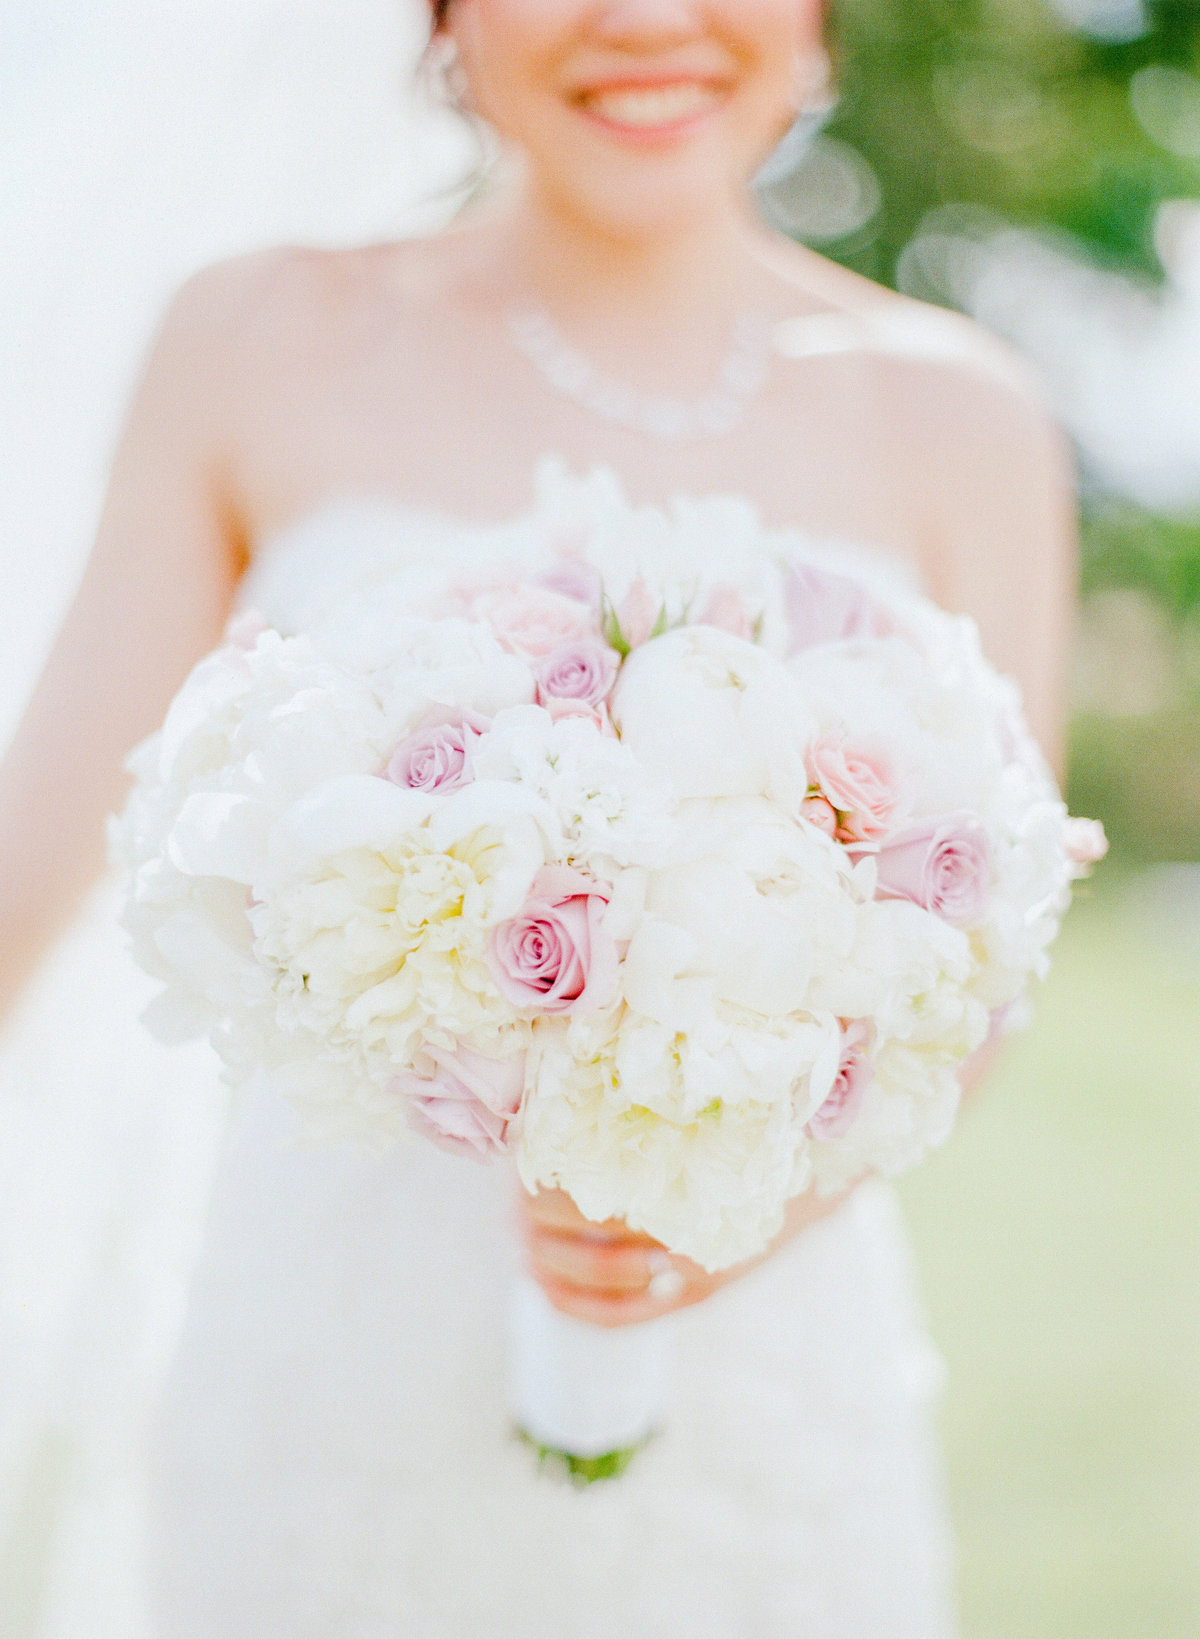 Blush Pink Roses and White Peonies Bouquet